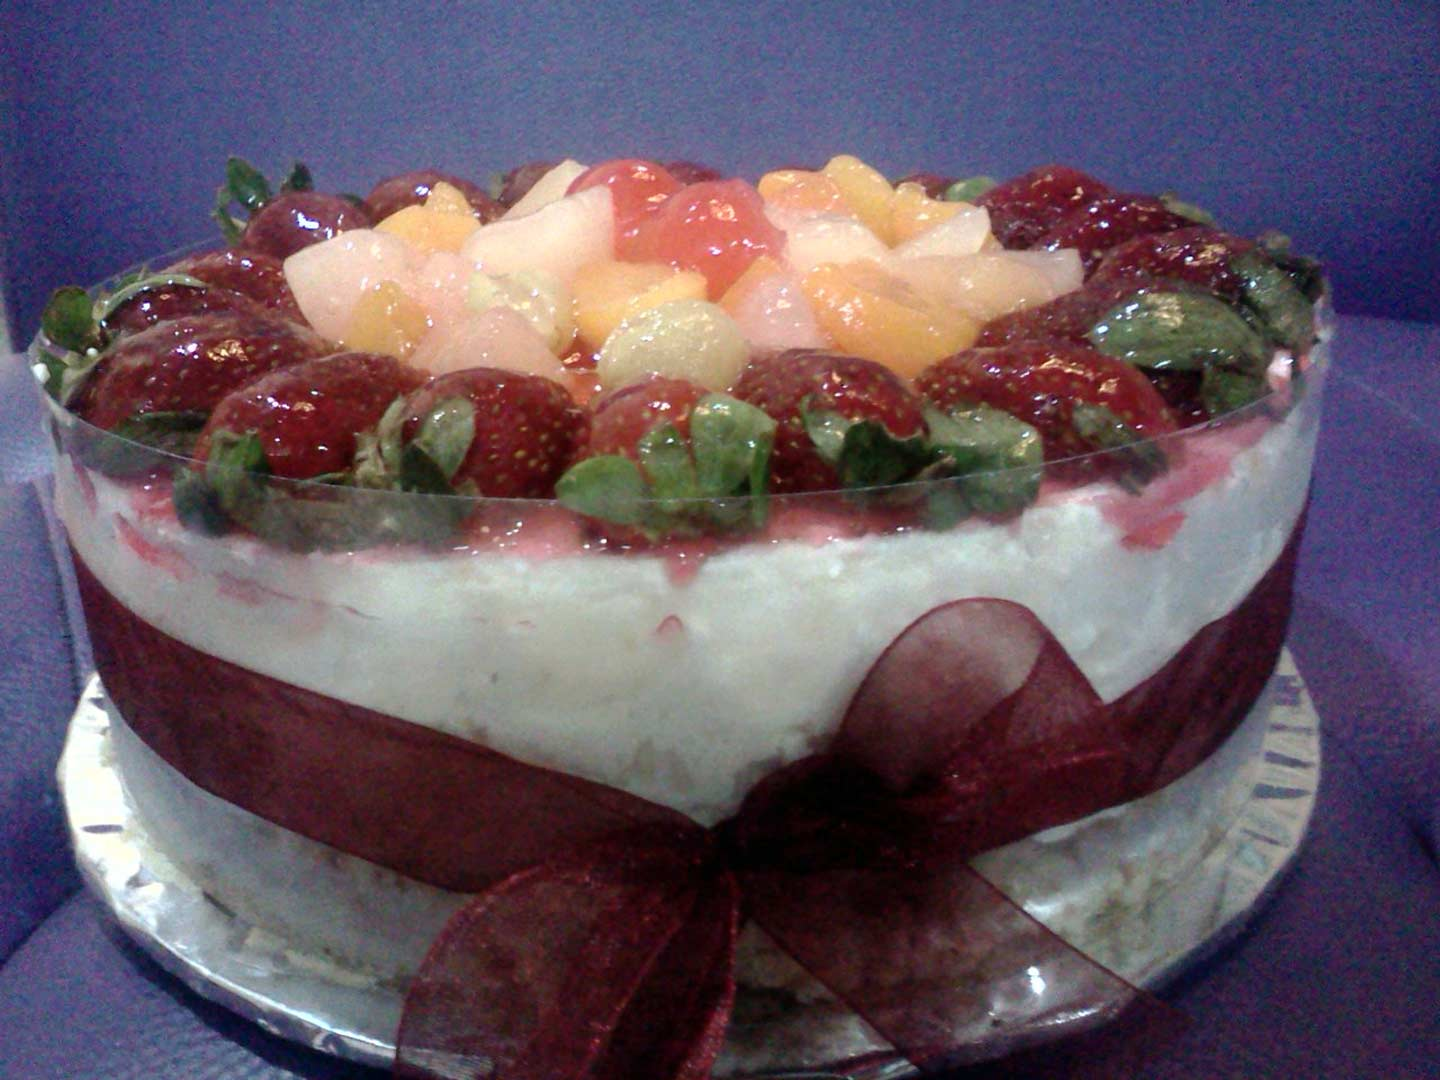 Unbaked-cheese-cake-21